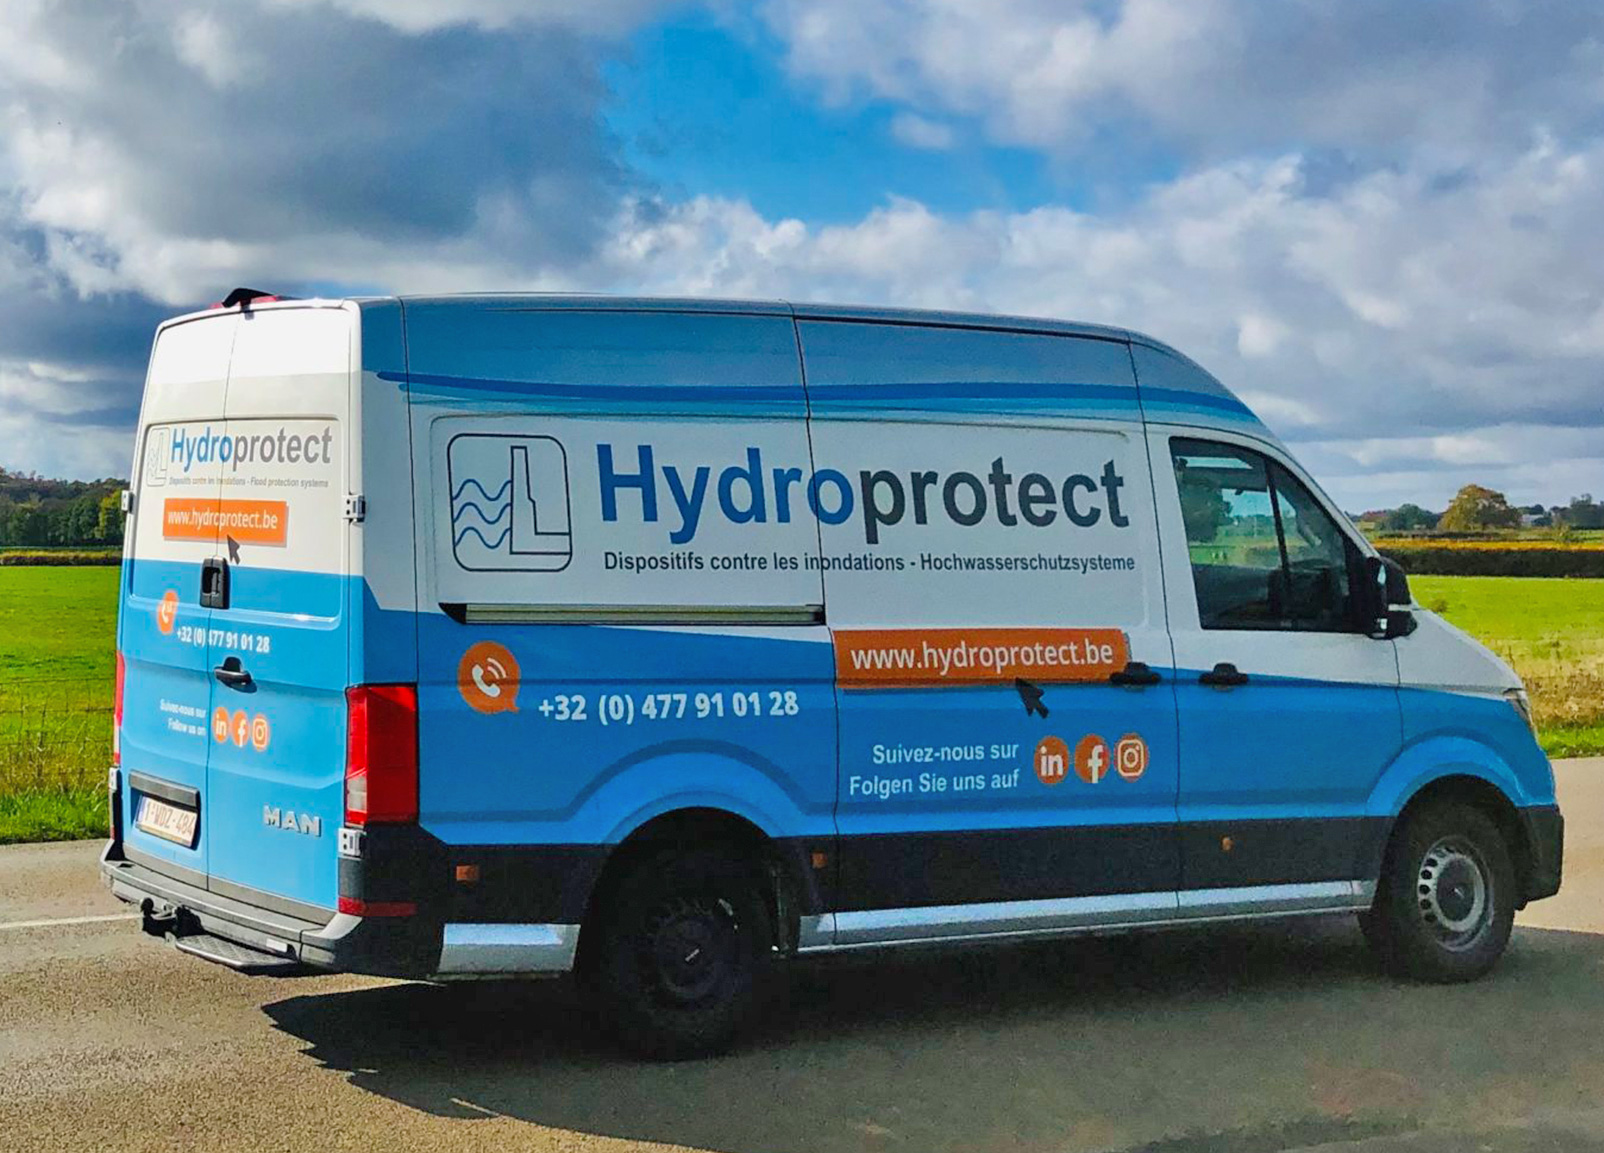 Hydroprotect